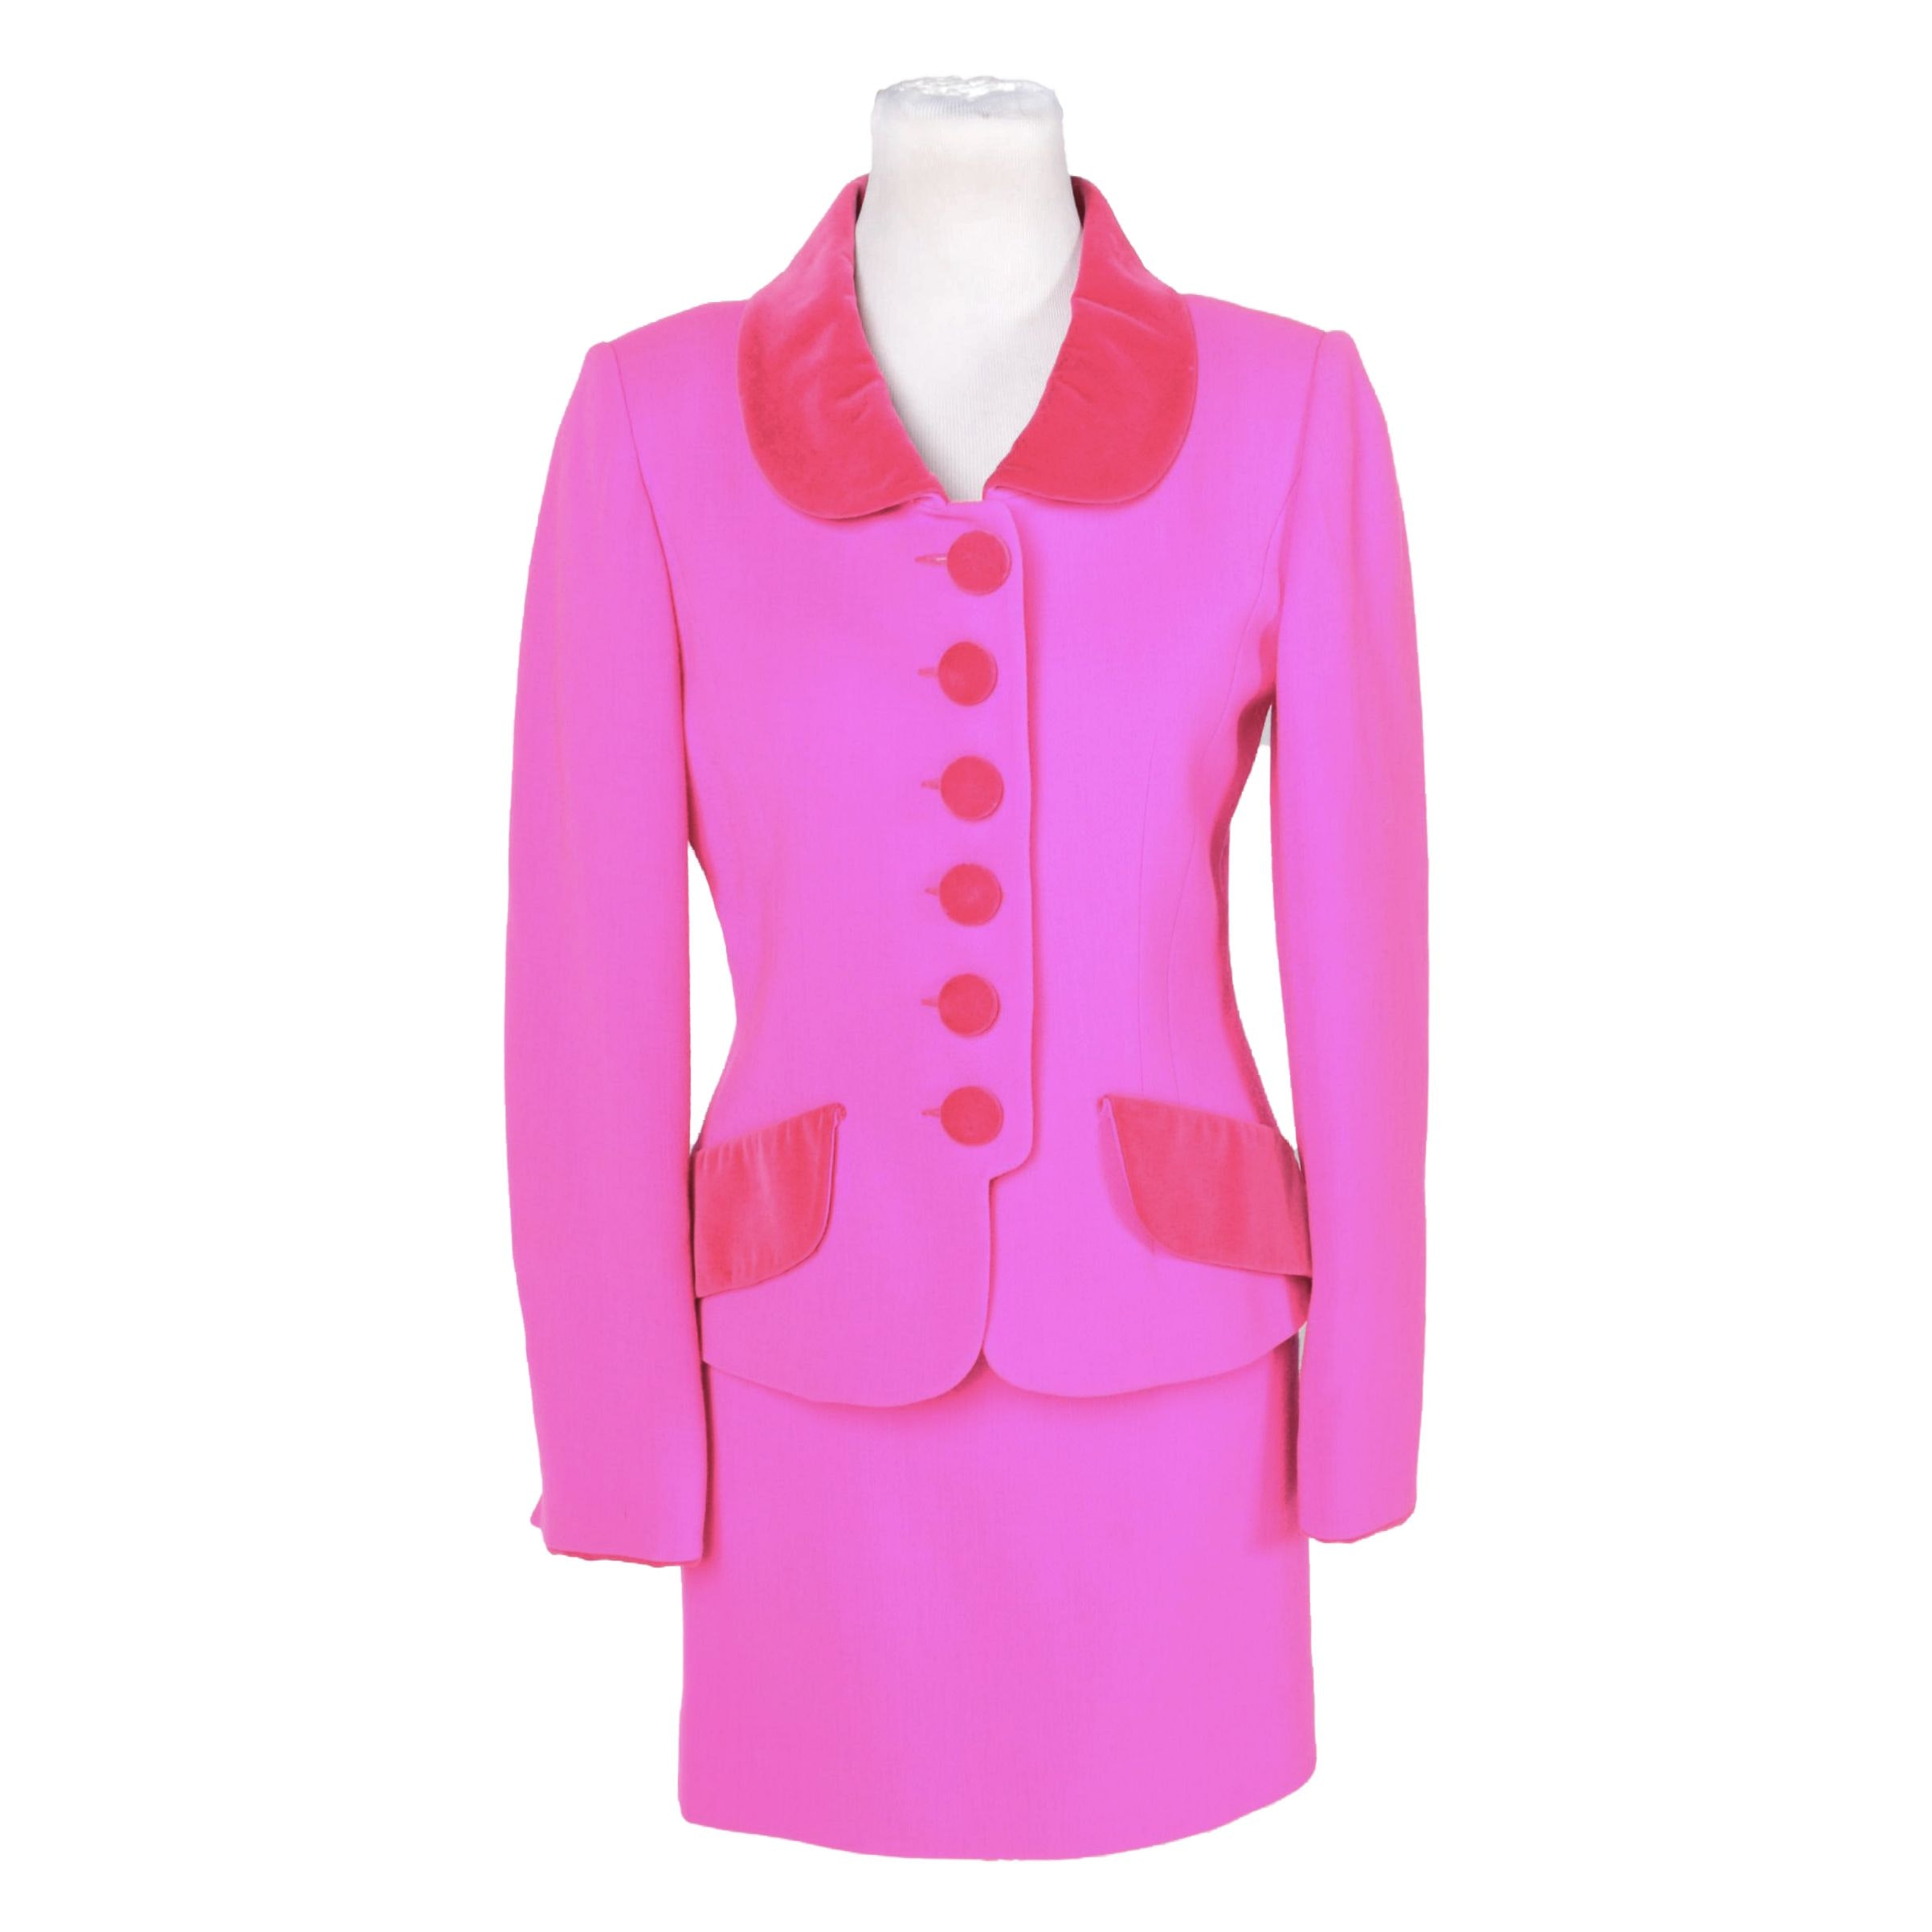 Nina Ricci Boutique Vibrant Pink Wool Suit